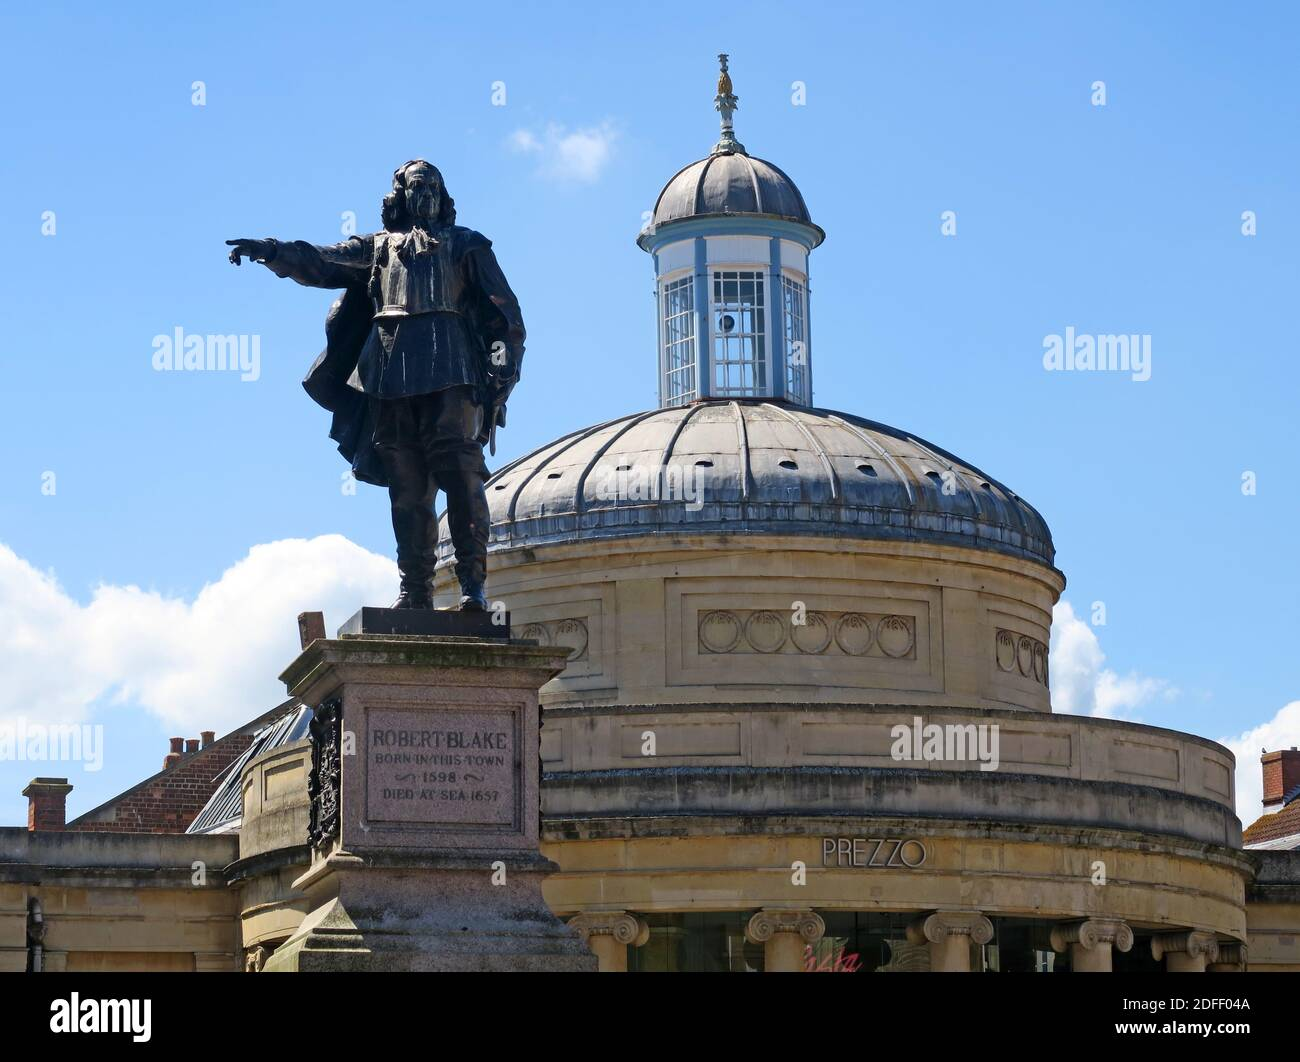 @Hotpixuk,Hotpixuk,GoTonySmith,historic,history,statue,town centre,Somerset,South West,England,UK,dome,roof,hollow bronze,FW Pomeroy,Grade II,dont topple,Statue must stay,must fall,BLM,Westover,iconic,Cornhill,pride,topple list,Slave Trade